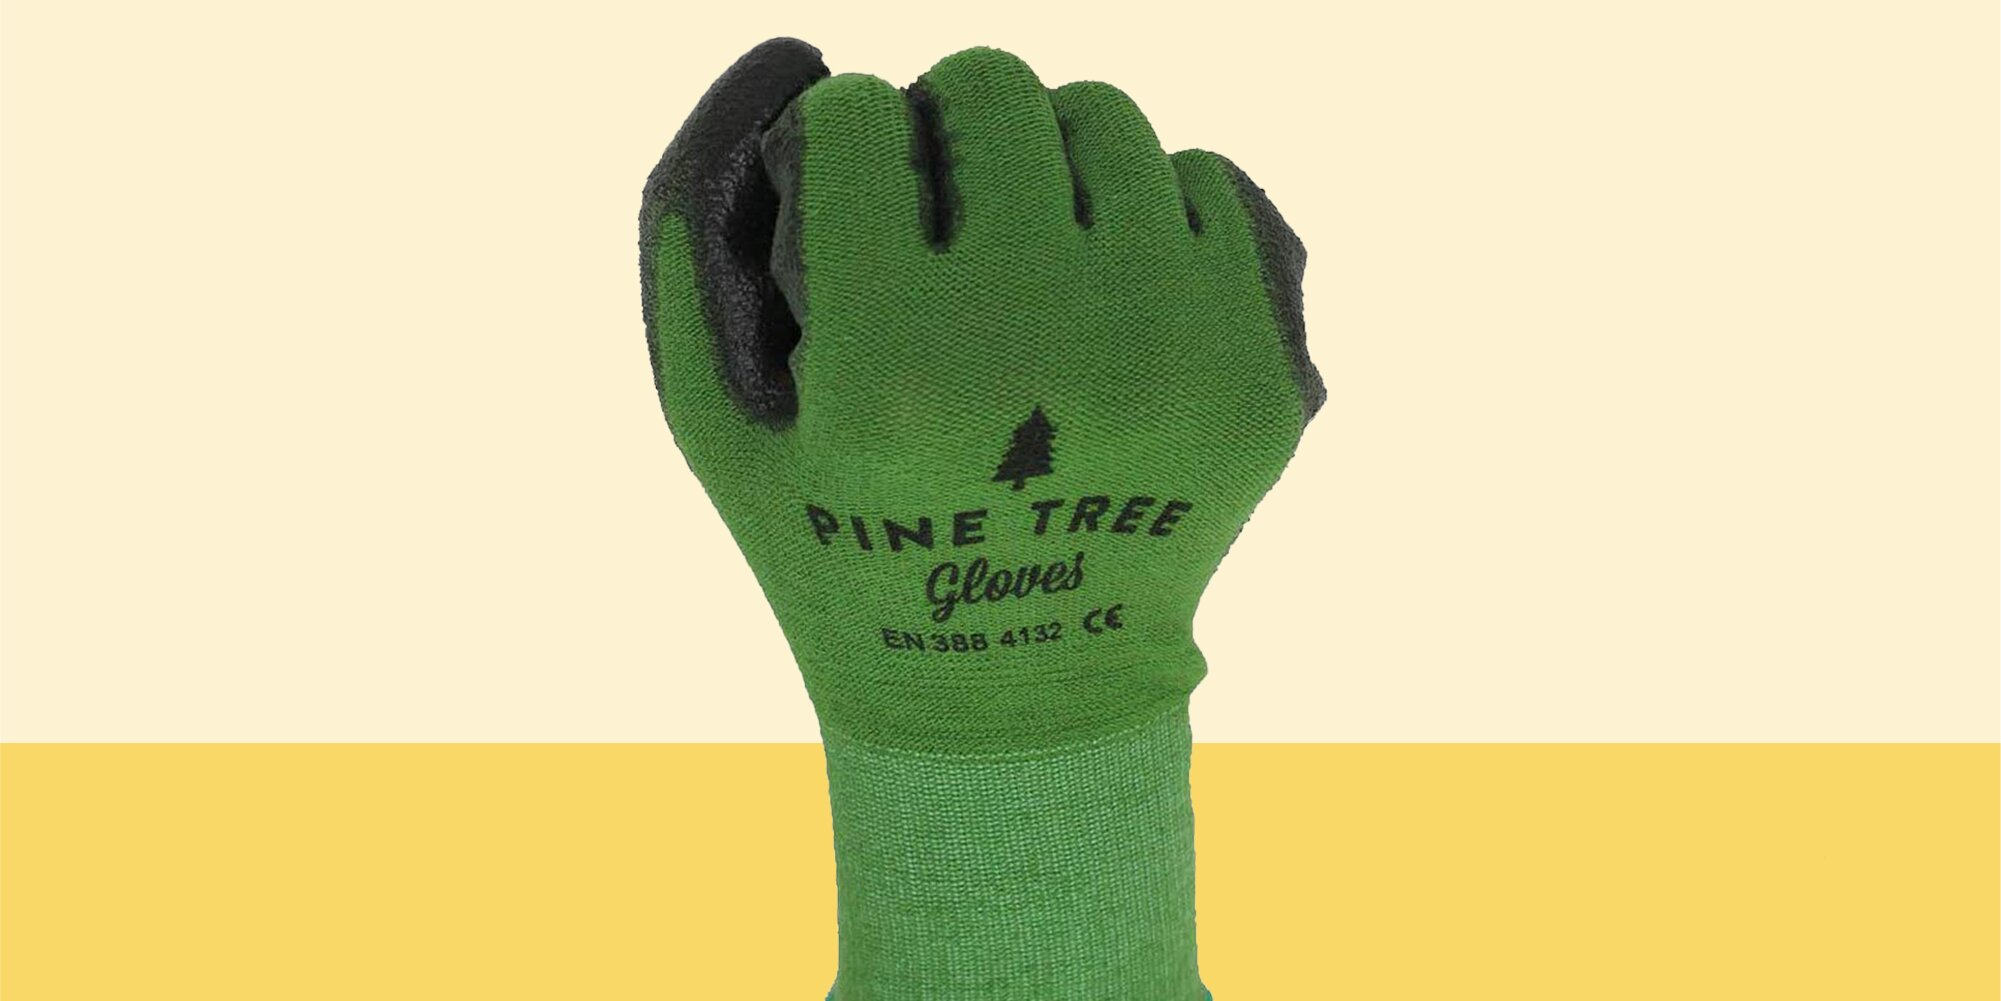 These Breathable Bamboo Gardening Gloves Fit 'Like a Second Skin' but Still Protect Your Hands